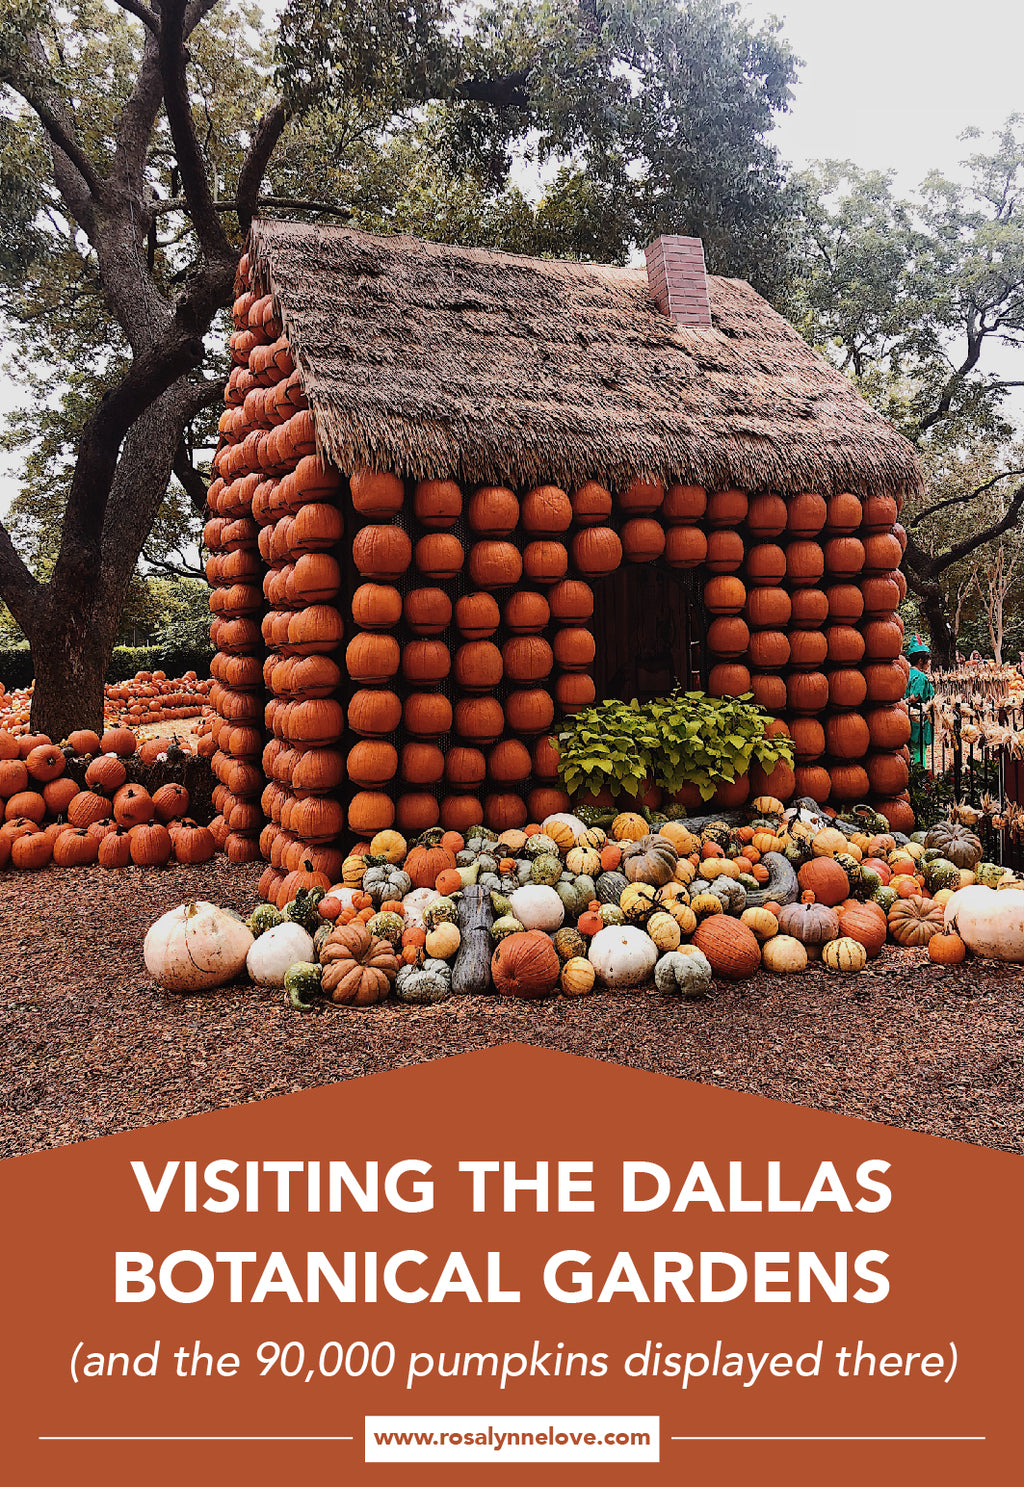 Dallas Botanical Gardens & 90,000 Pumpkins